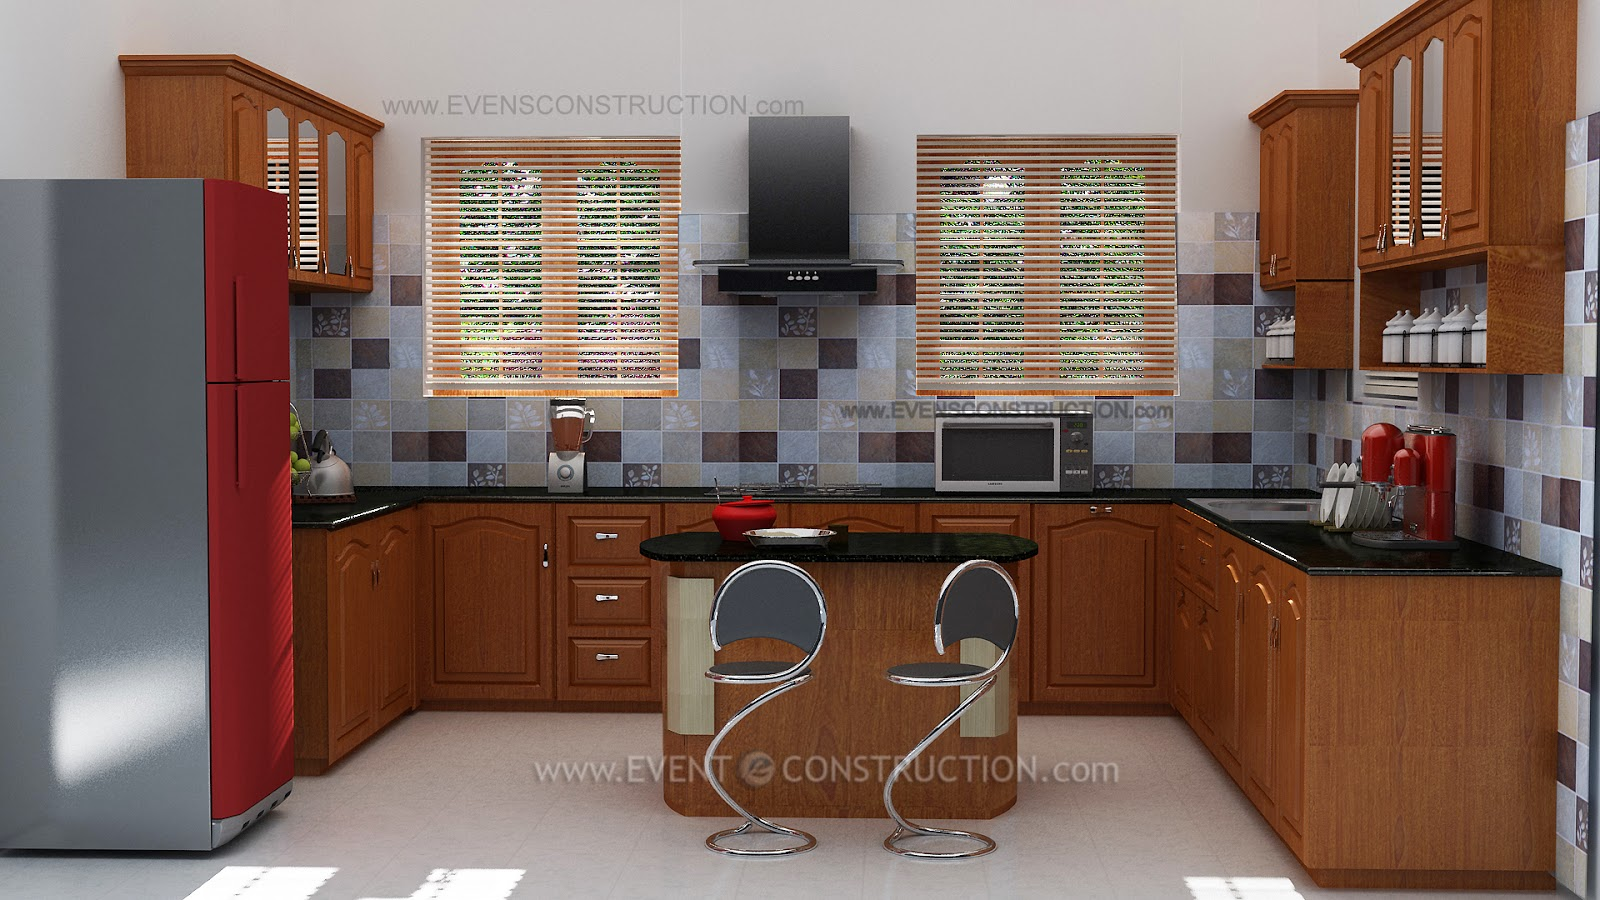 Evens construction pvt ltd november 2014 for Kitchen design kerala